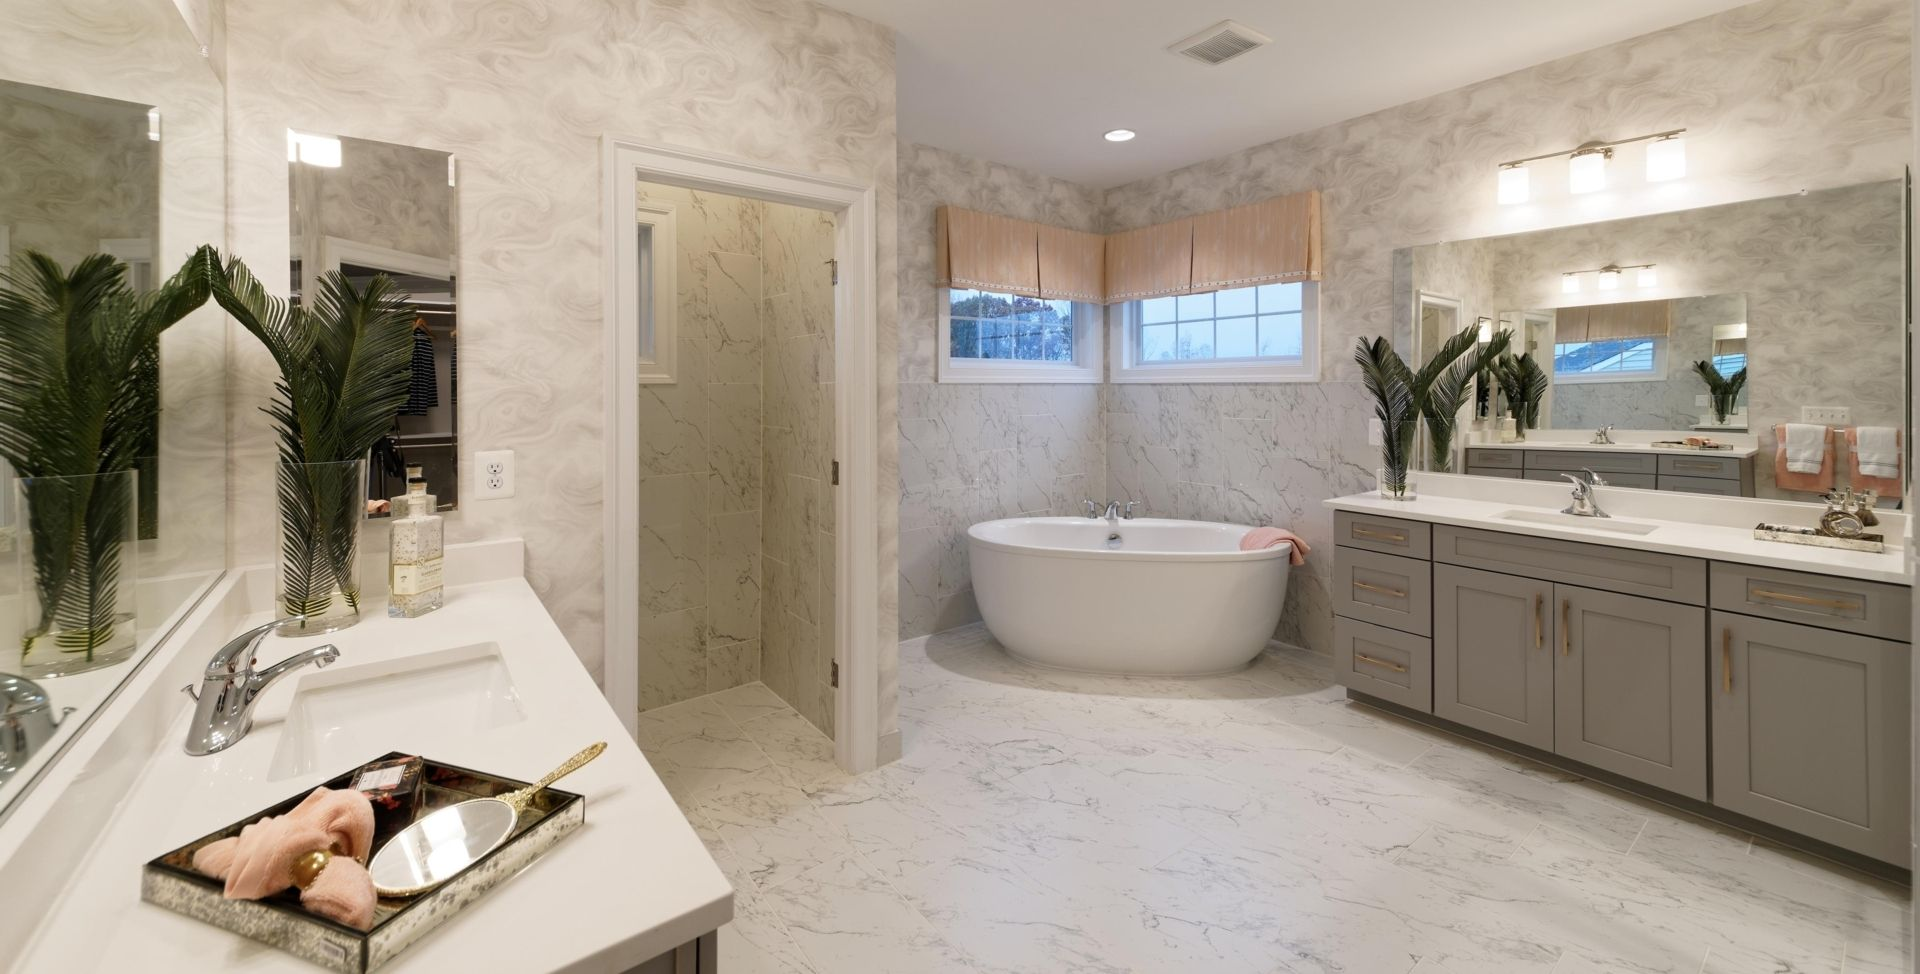 Bathroom featured in the Sorrento MG By Mid-Atlantic Builders in Washington, MD